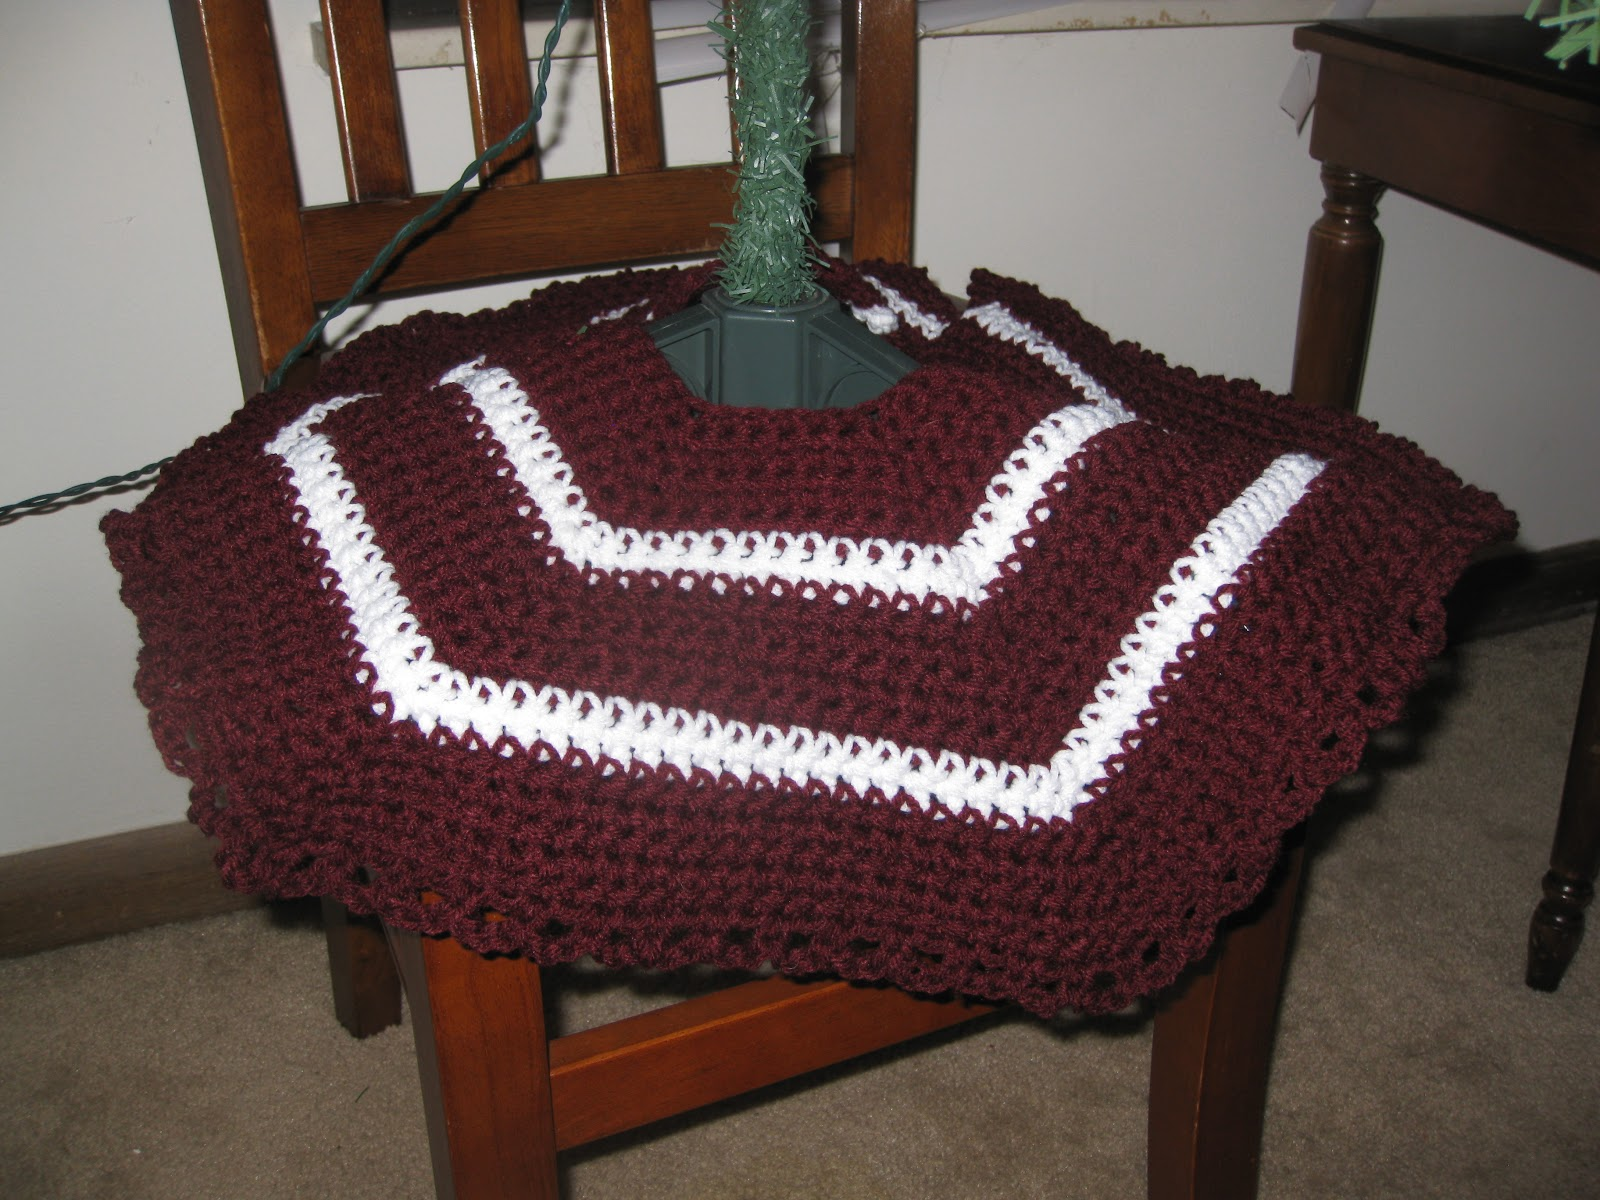 Engineered Crochet: Simple Christmas Tree Skirt